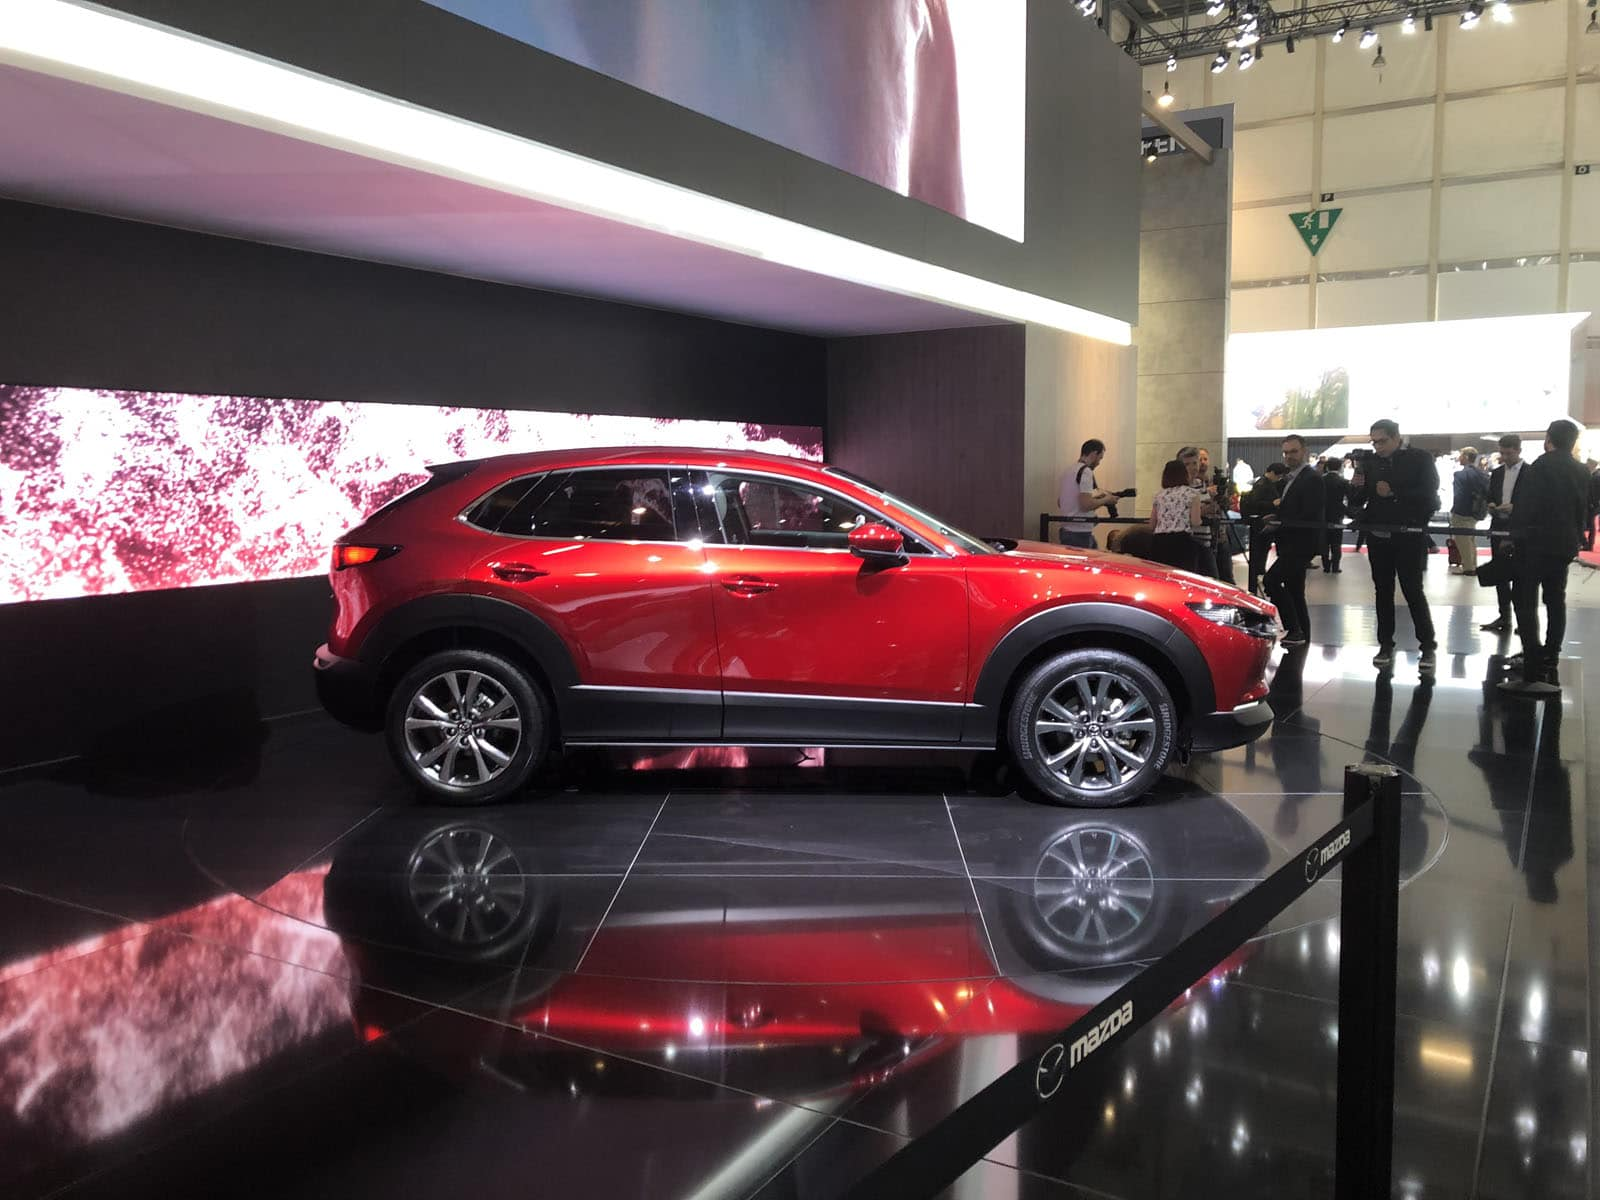 Mazda Cx 5 >> Why Is The New Mazda CX-30 Called The CX-30? - Motor ...